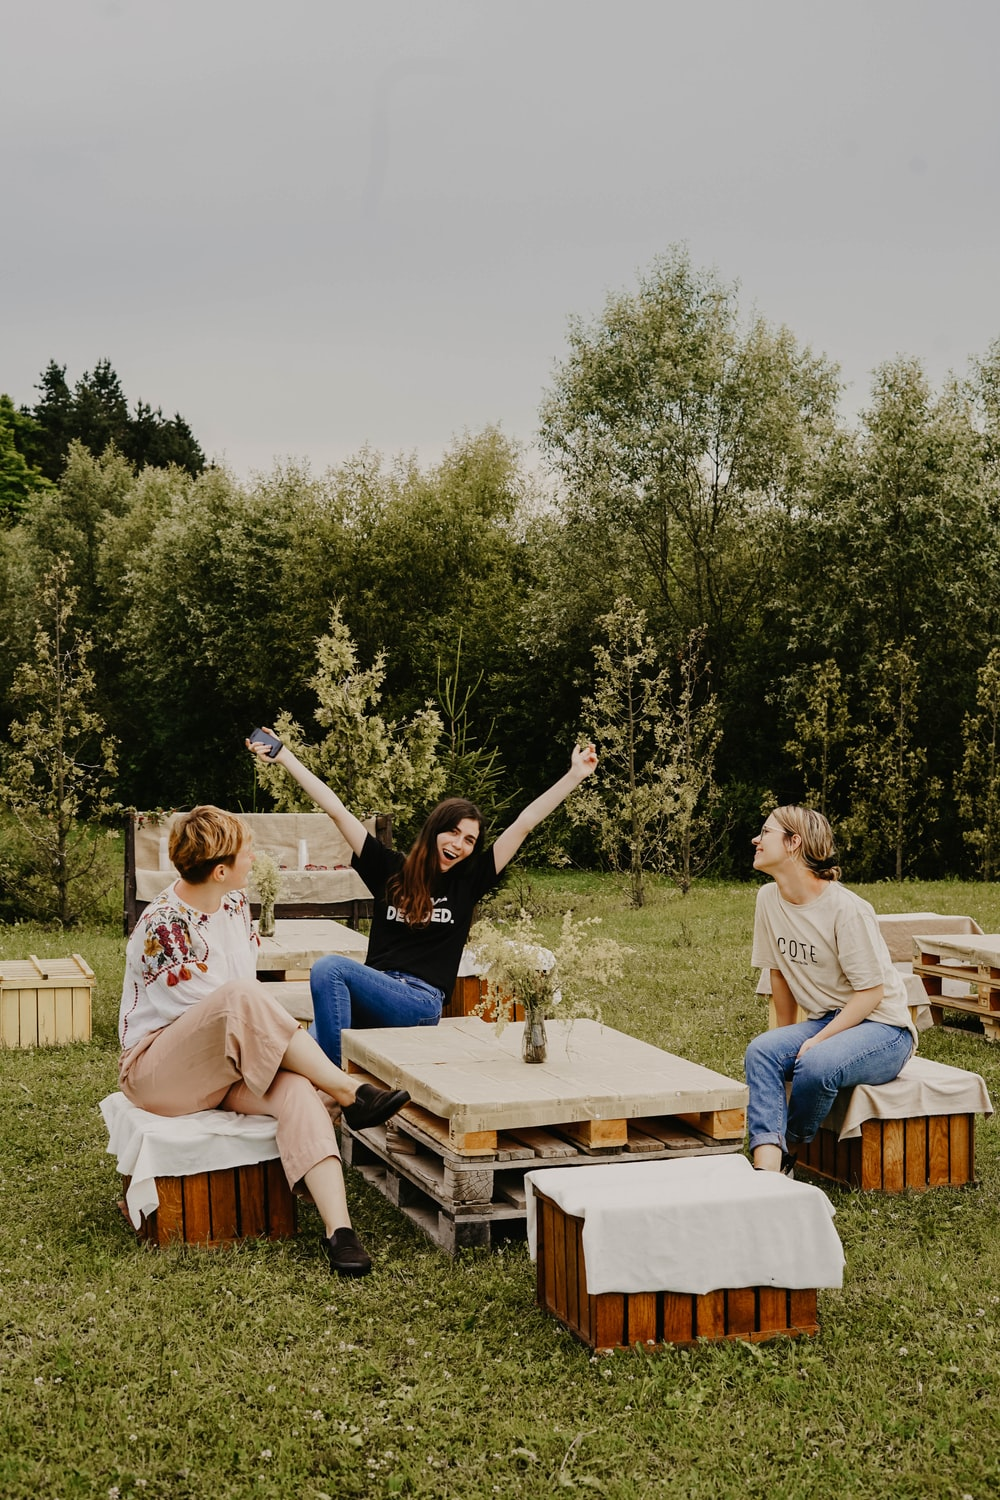 women sitting on chairs outdoor